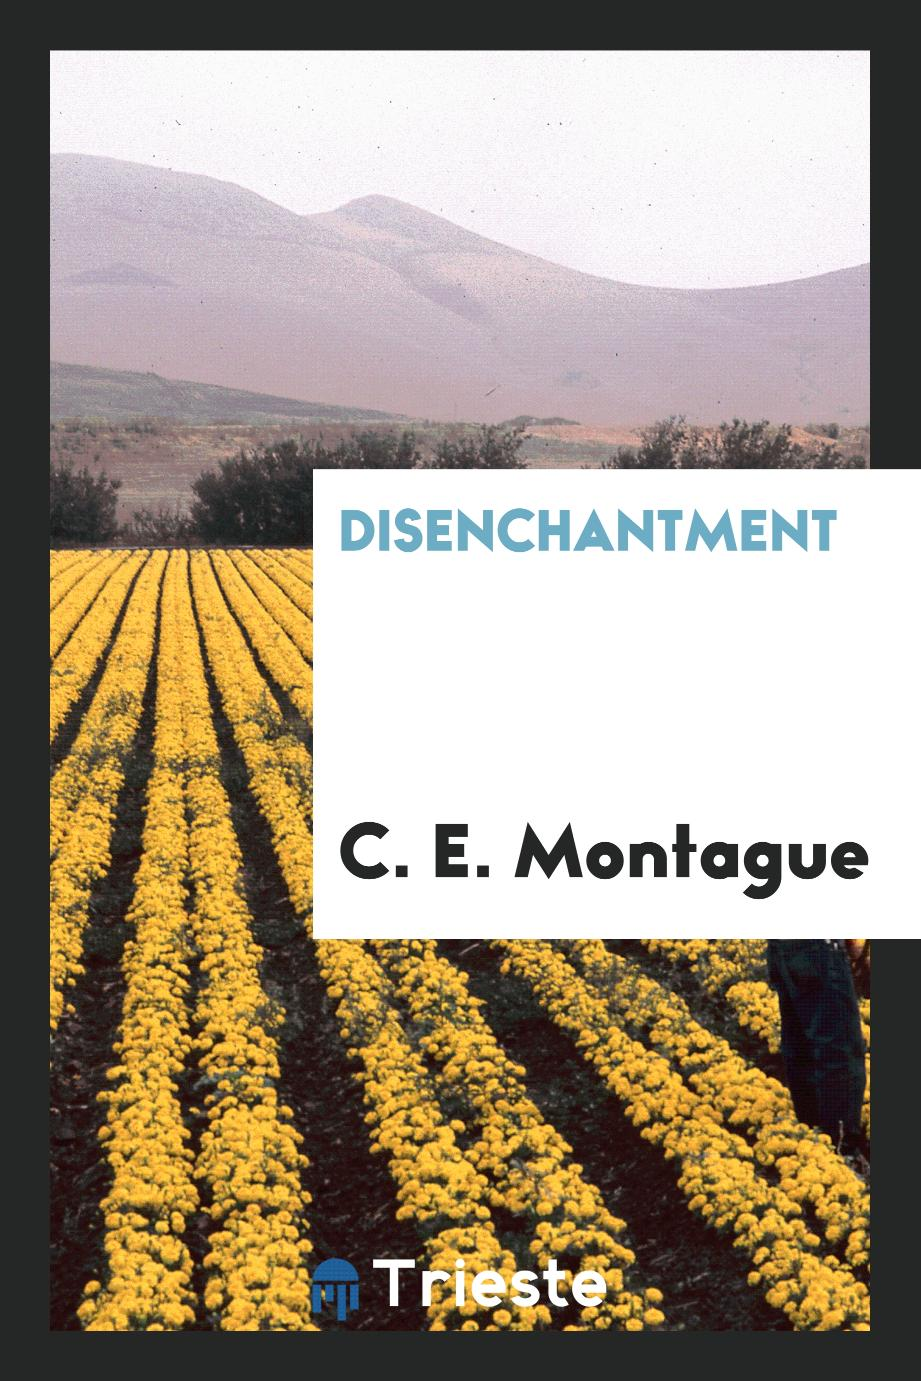 C. E. Montague - Disenchantment